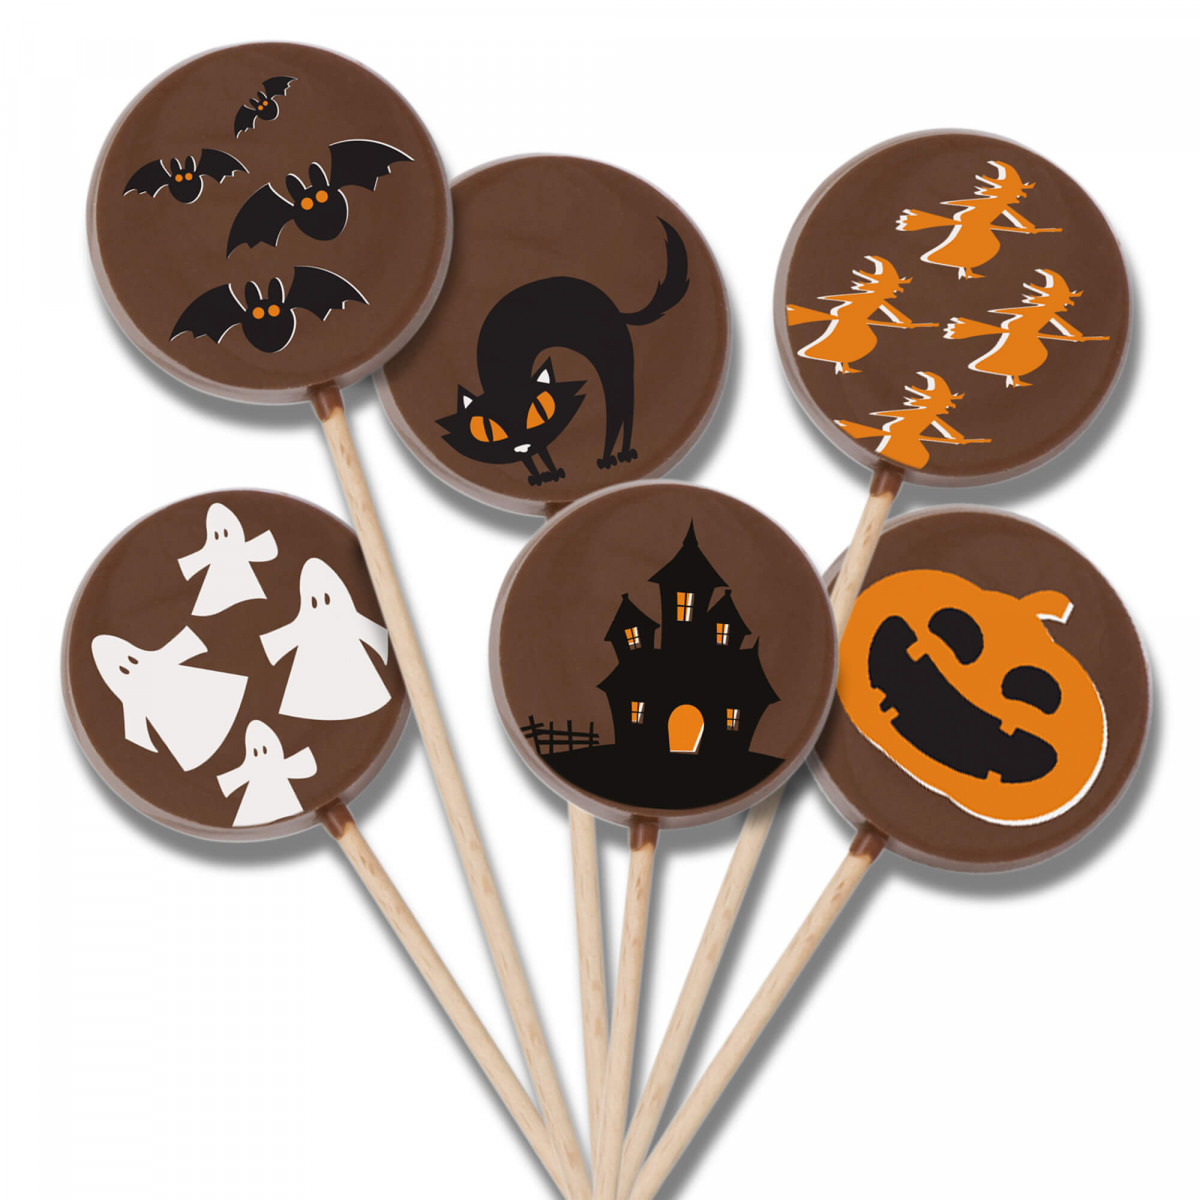 Samain lot 6 sucettes chocolat au lait Halloween